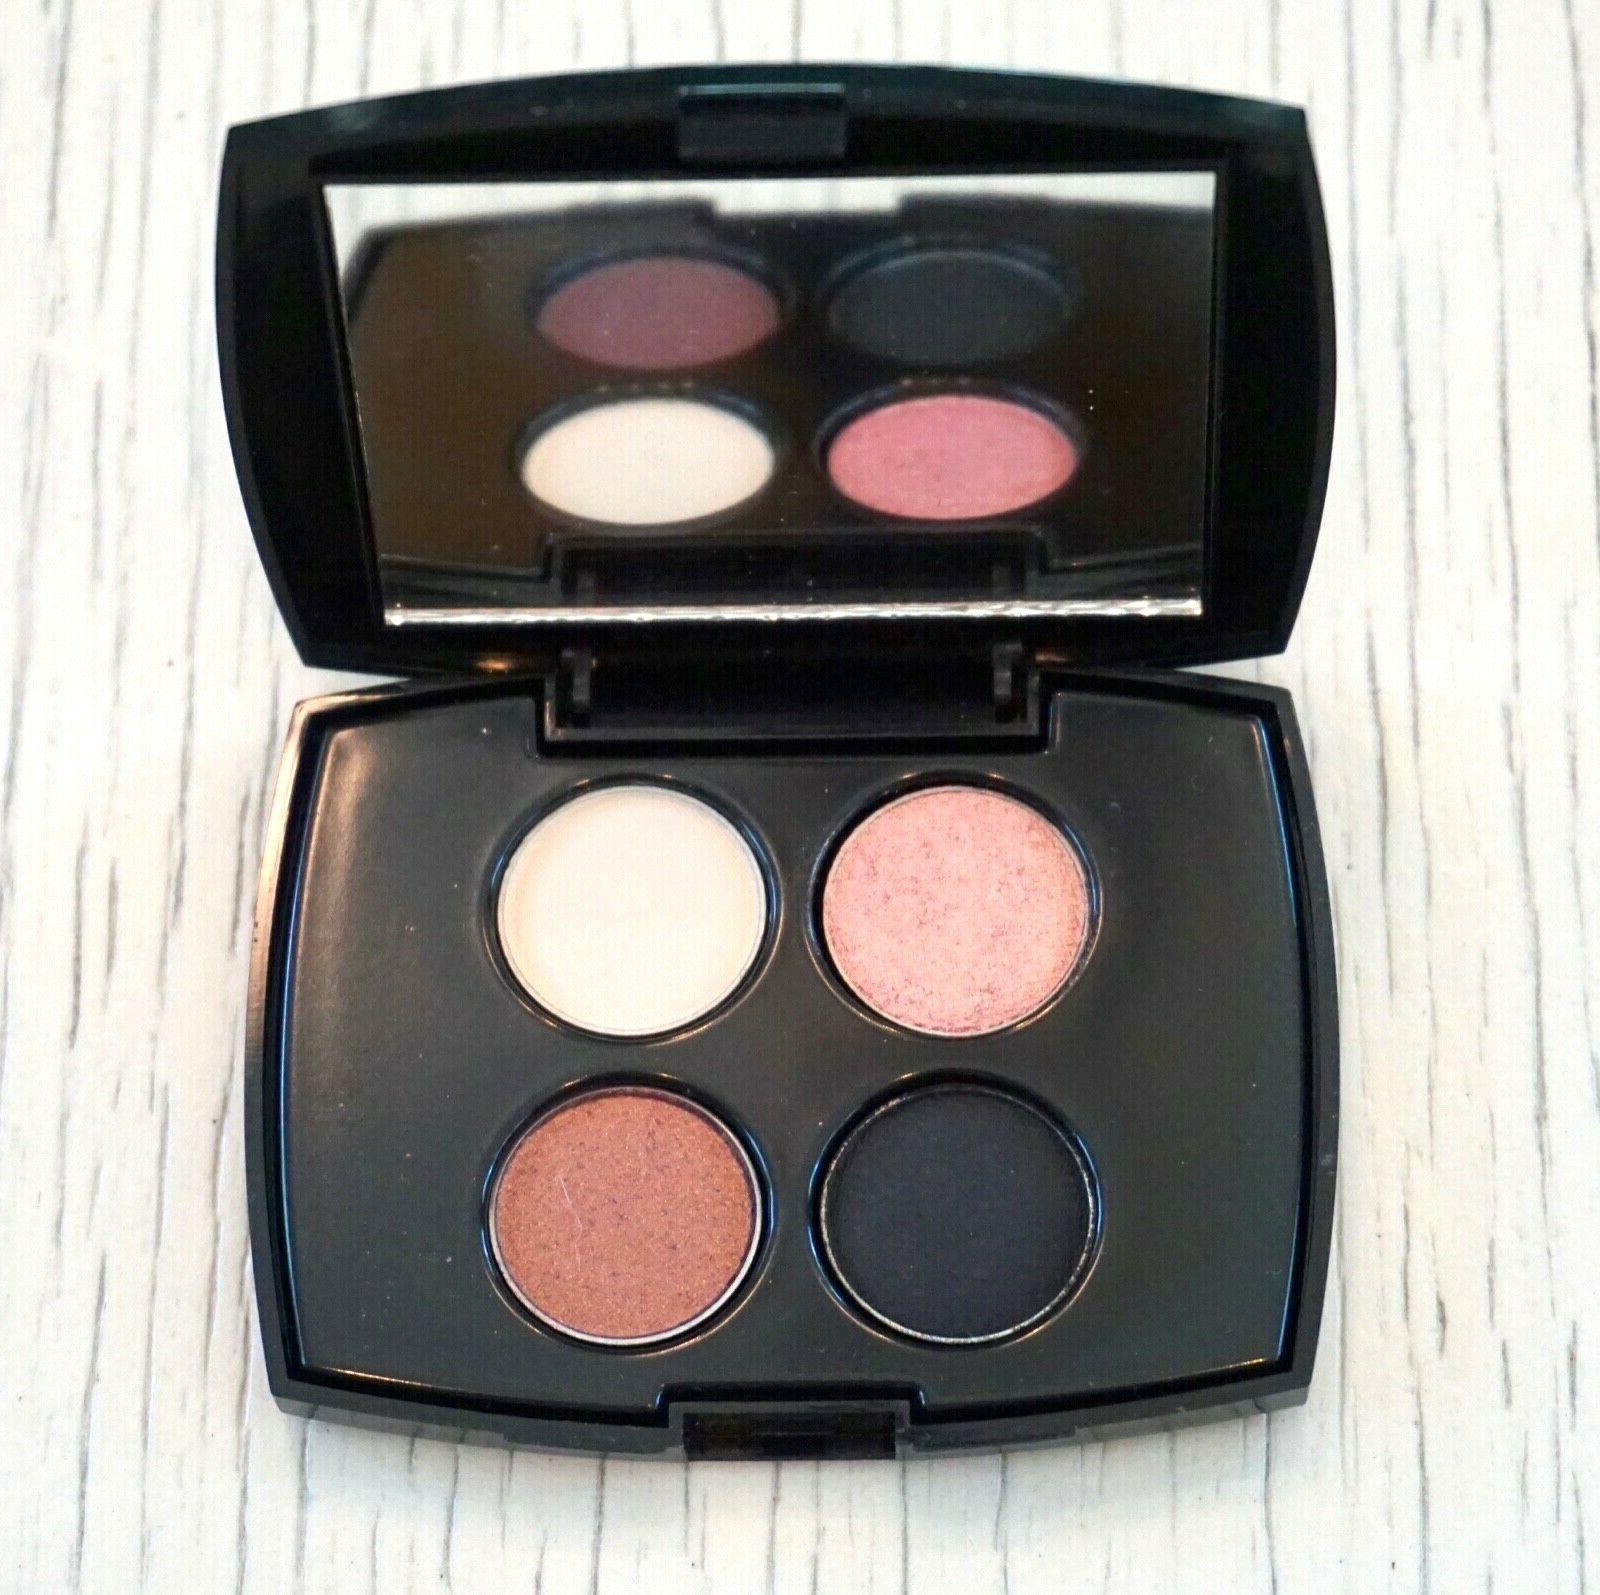 Lancome Color Design Sensational Effects 4 Eyeshadow Palette,Space Saving Small Space Small Bedroom Design Ideas